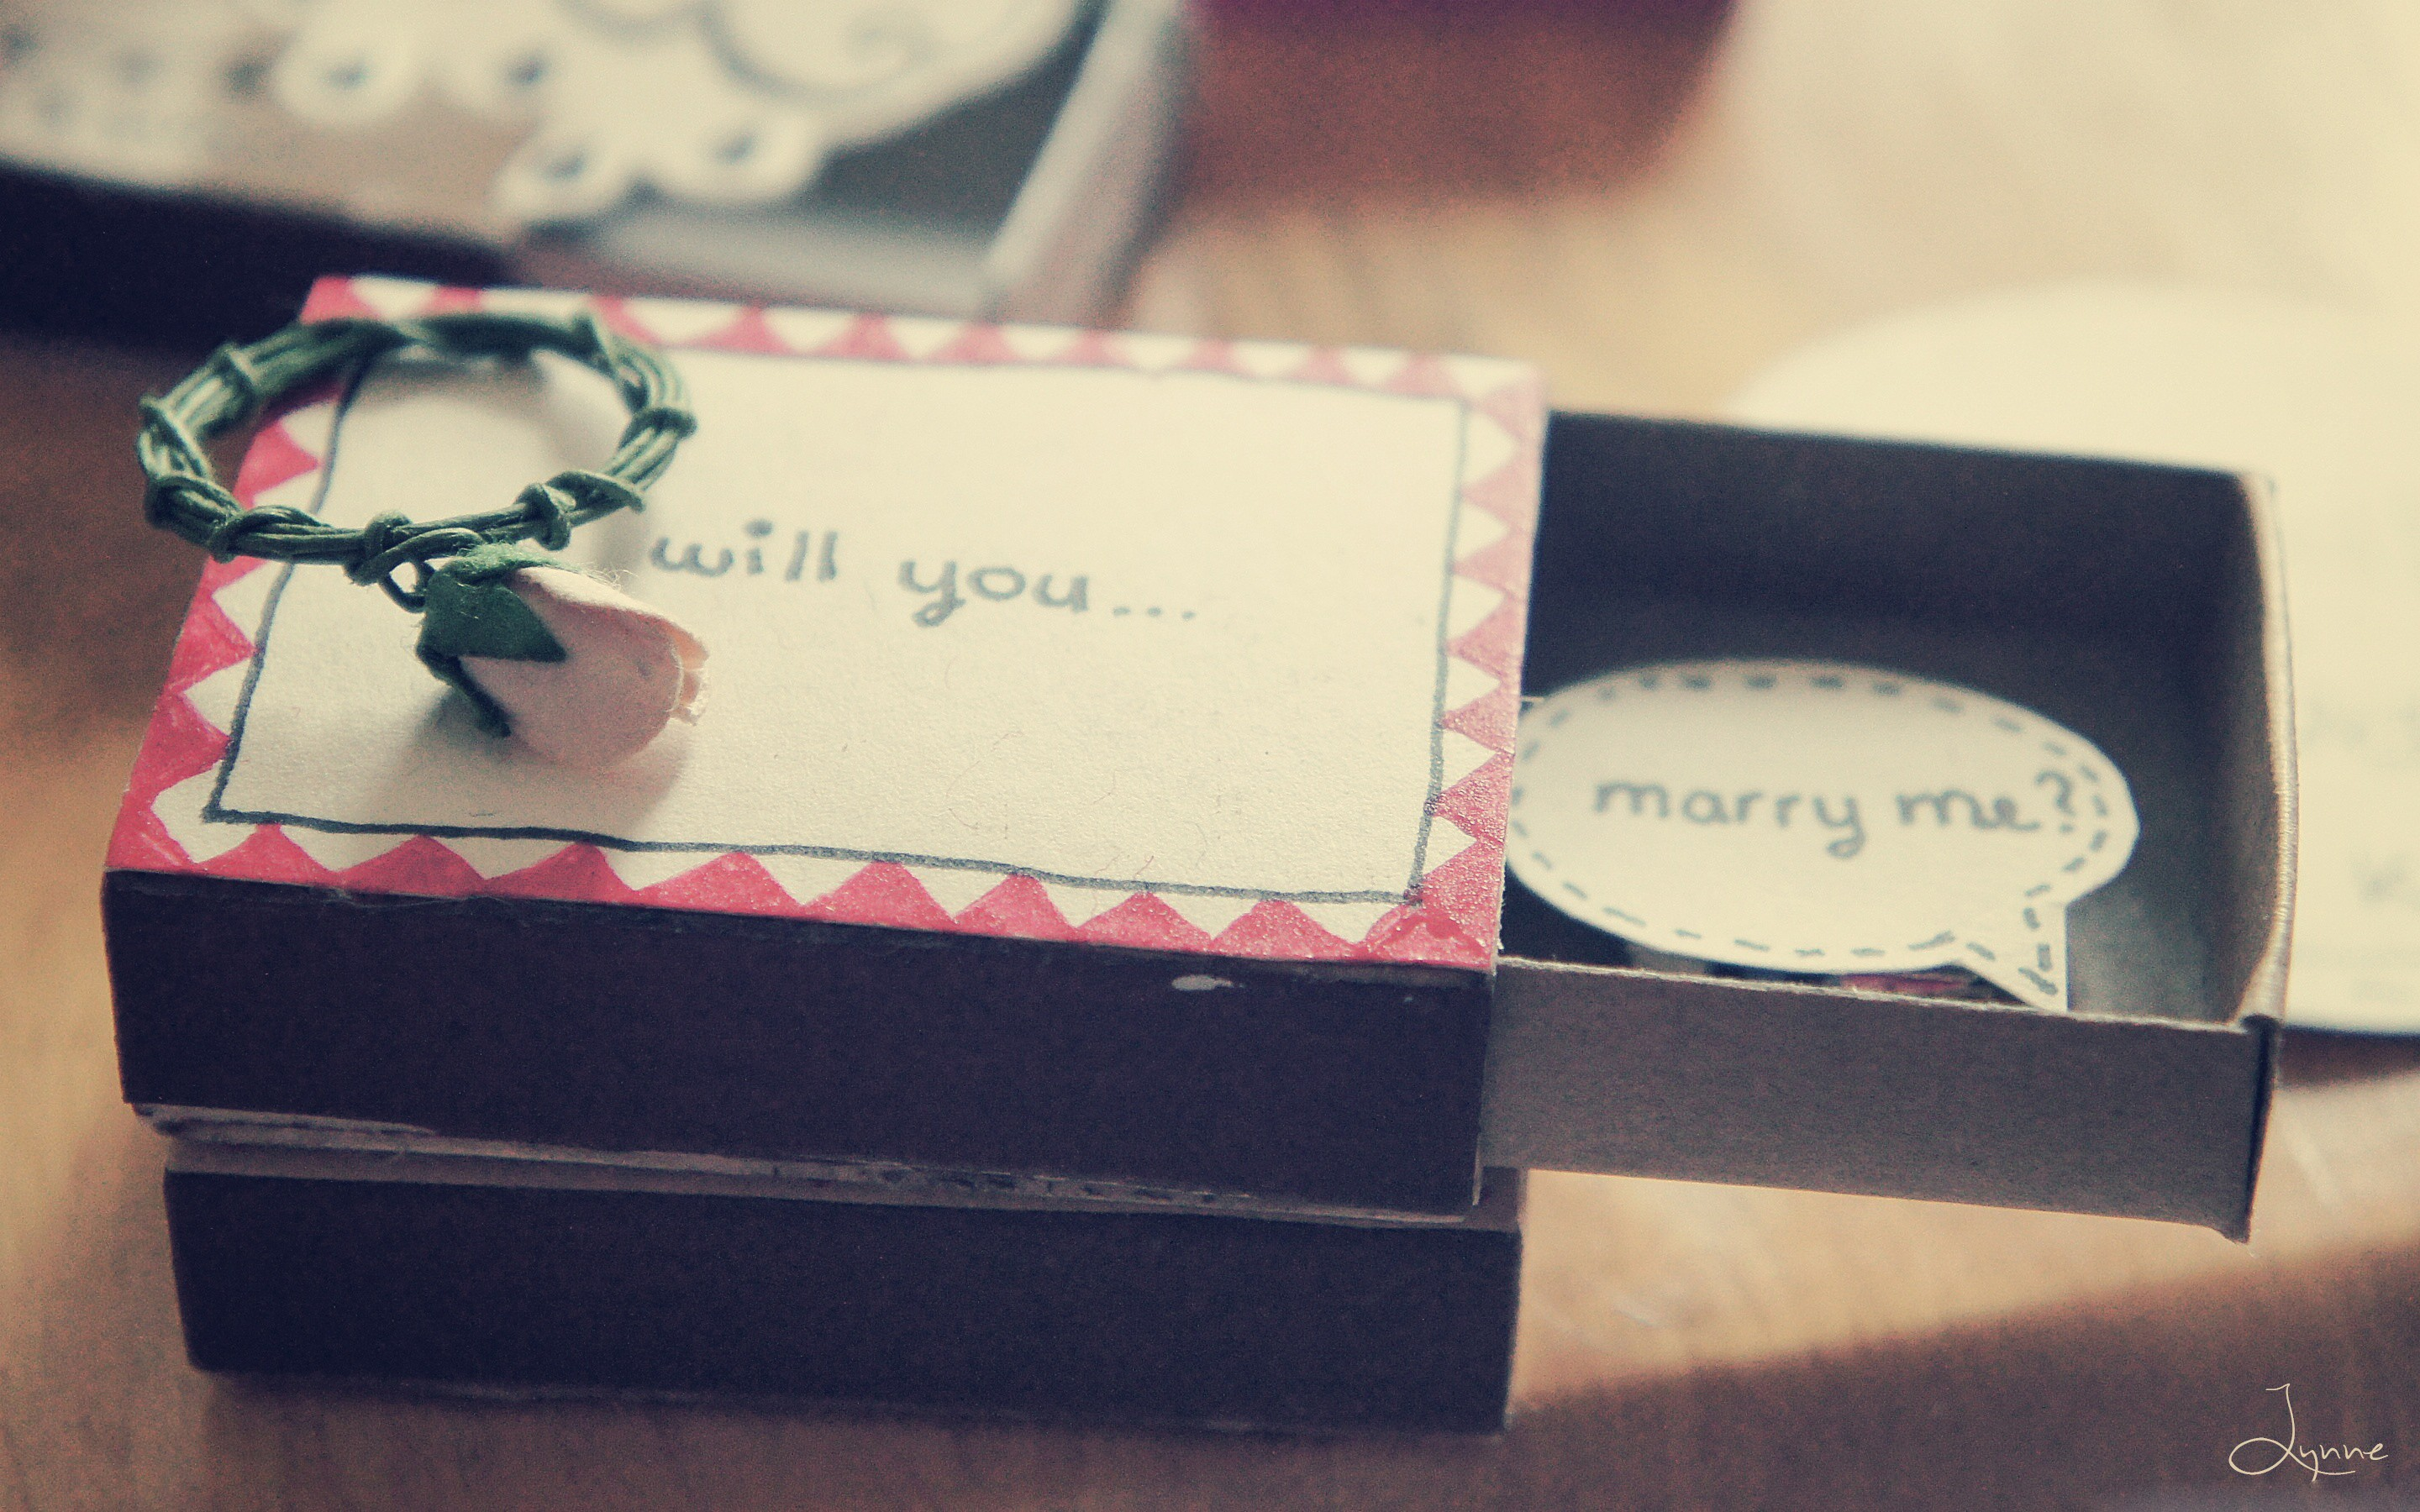 Will You Marry Me Wallpaper Allwallpaperin 6219 Pc En